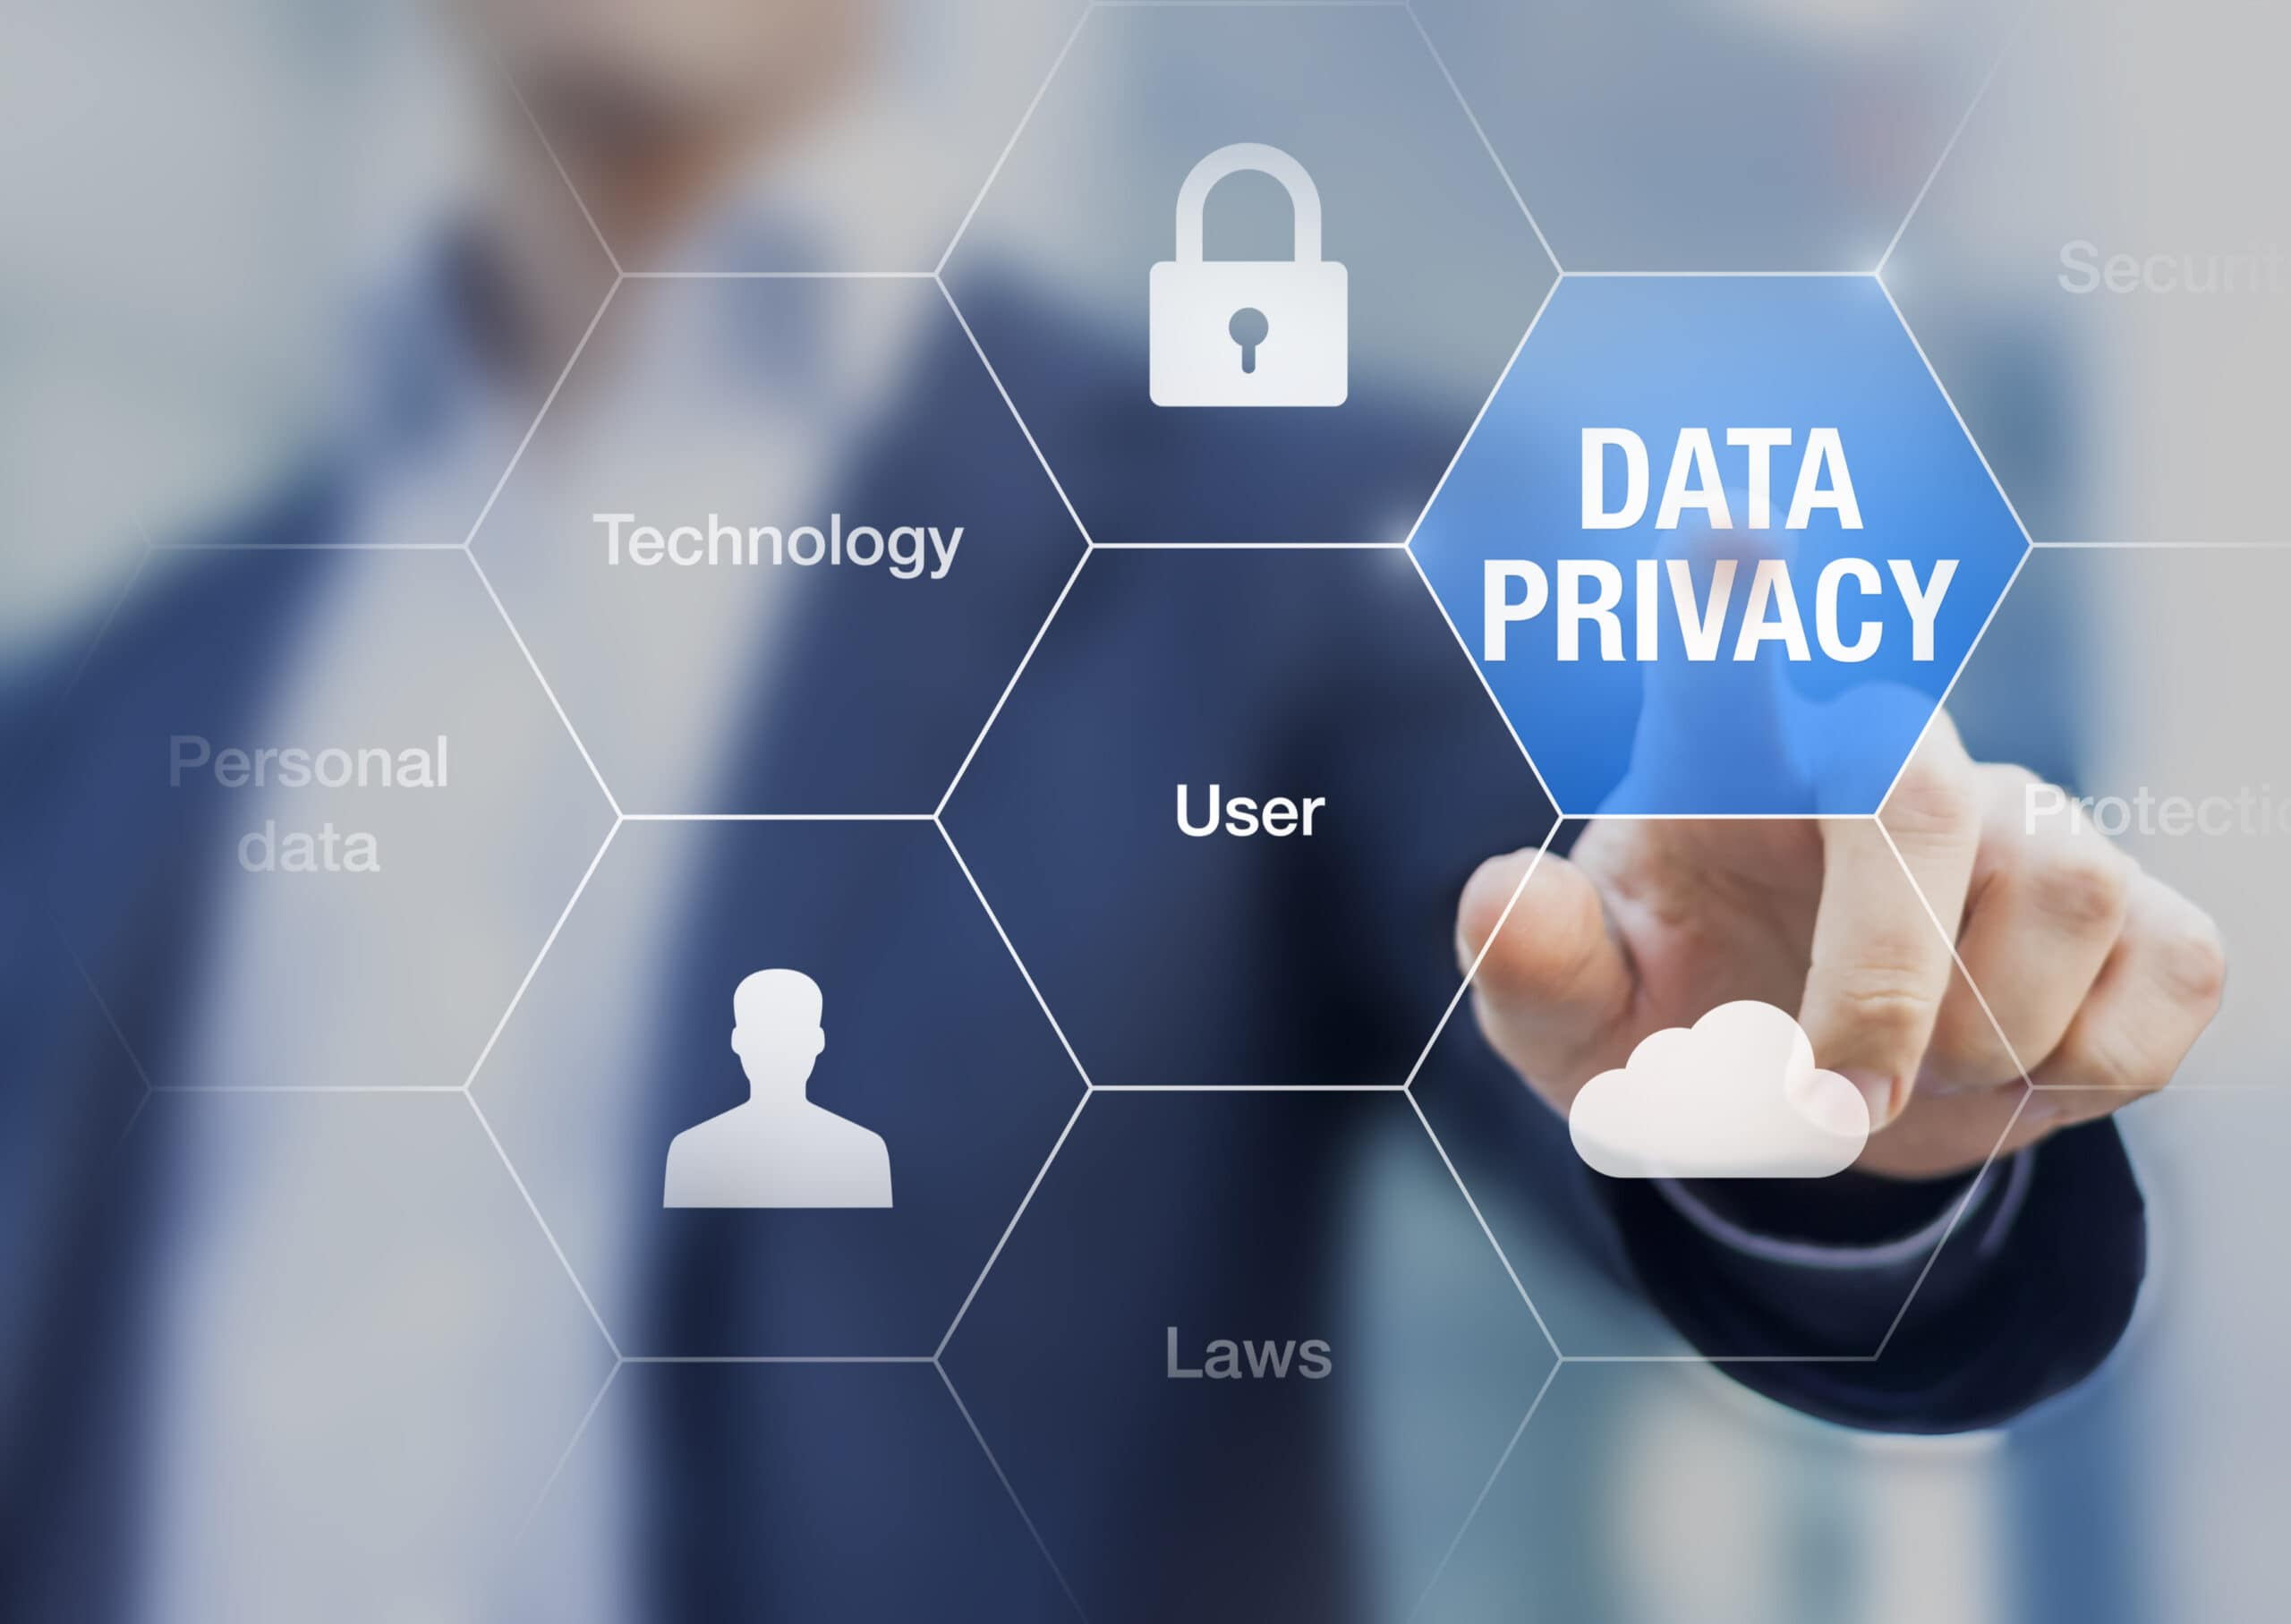 Data privacy enable to protect personal data on internet while providing technology services to users